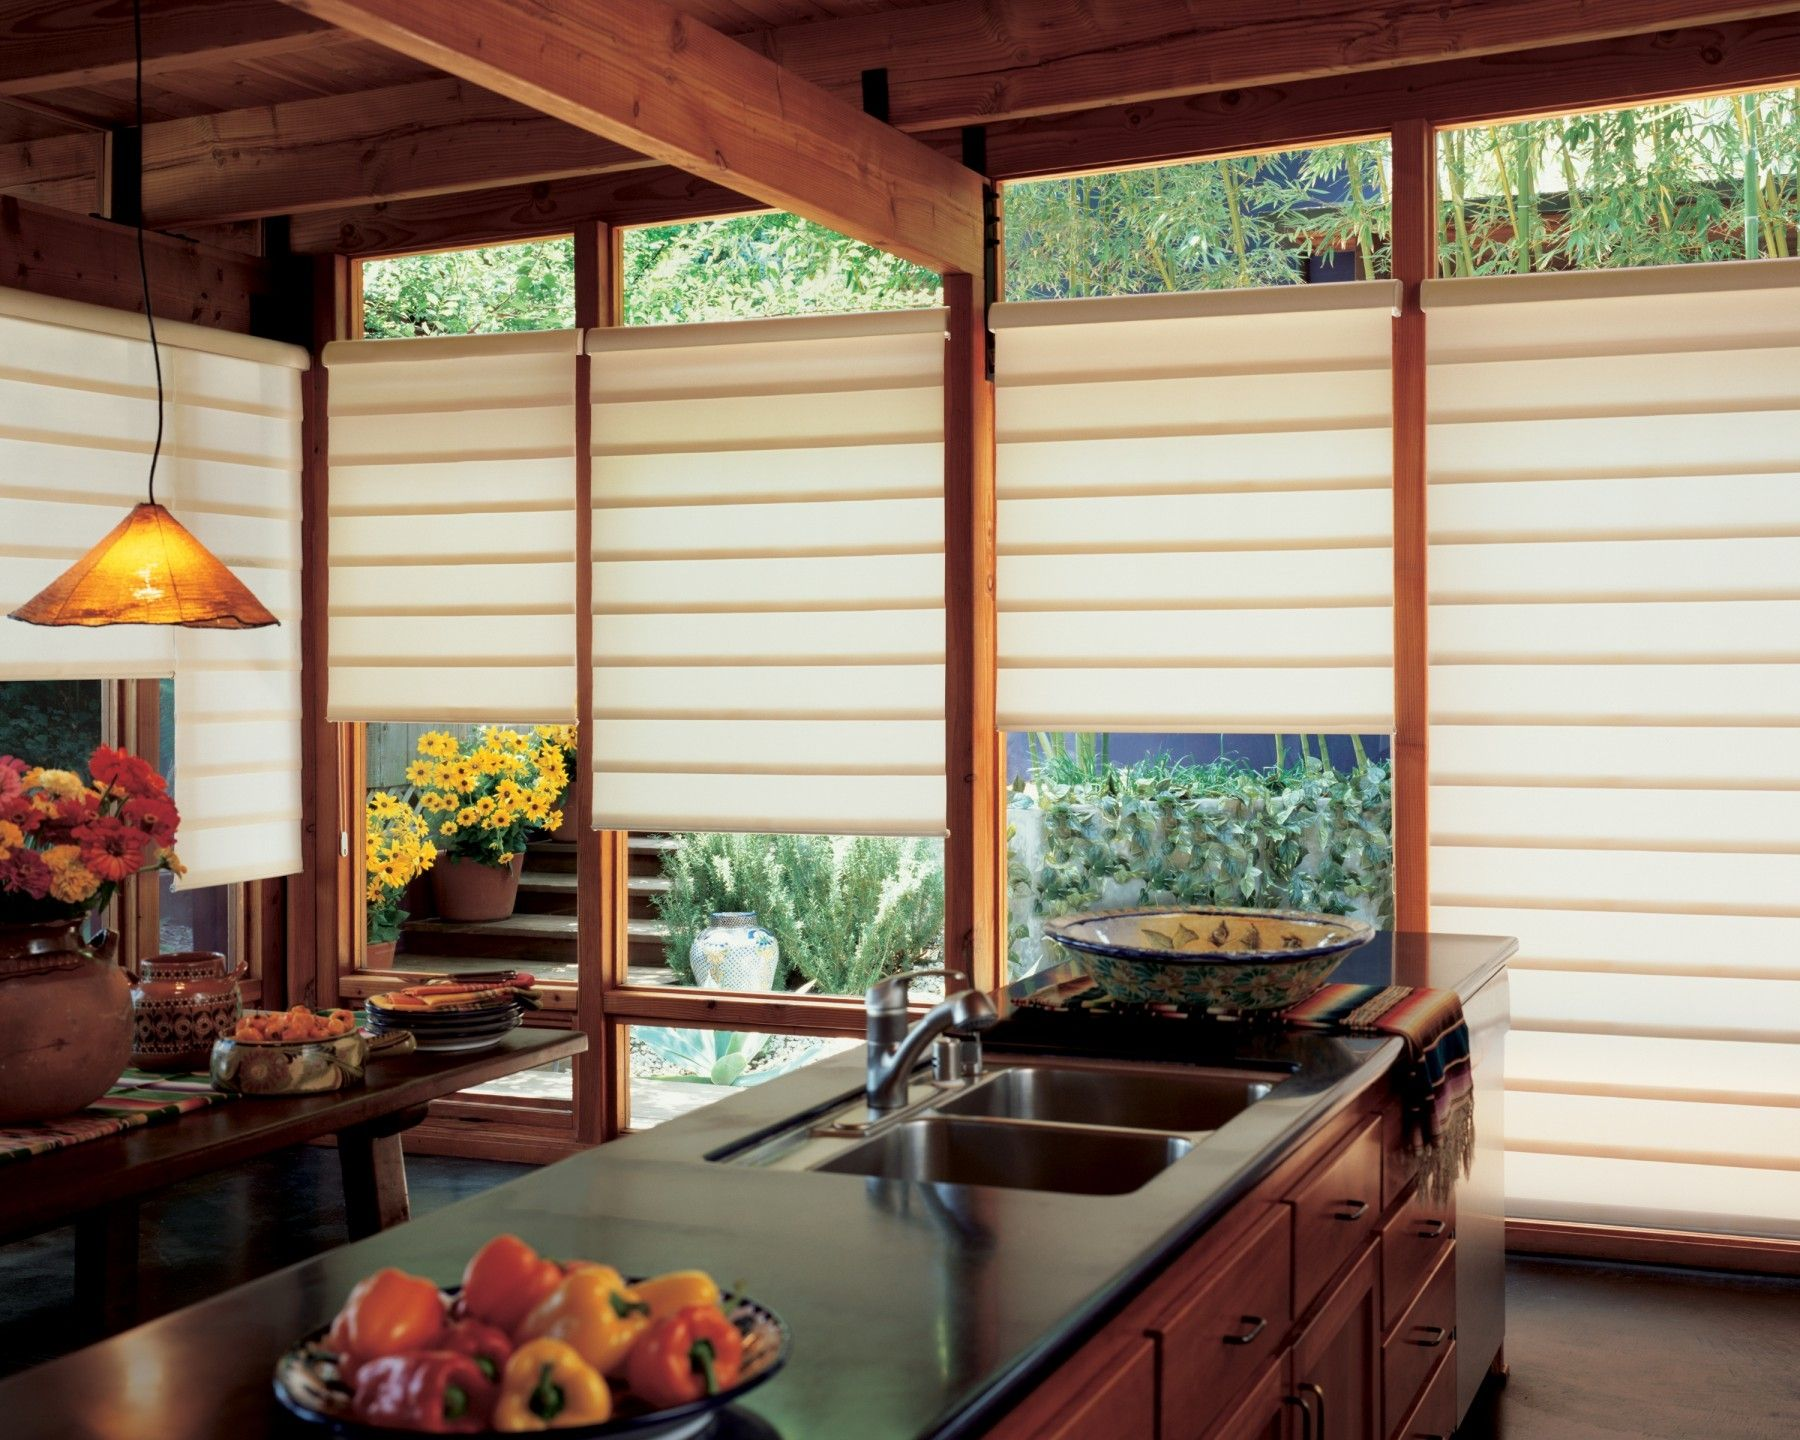 Kitchen Shades Have An Ugly Window View Try Roller Shades Or One Of These Other